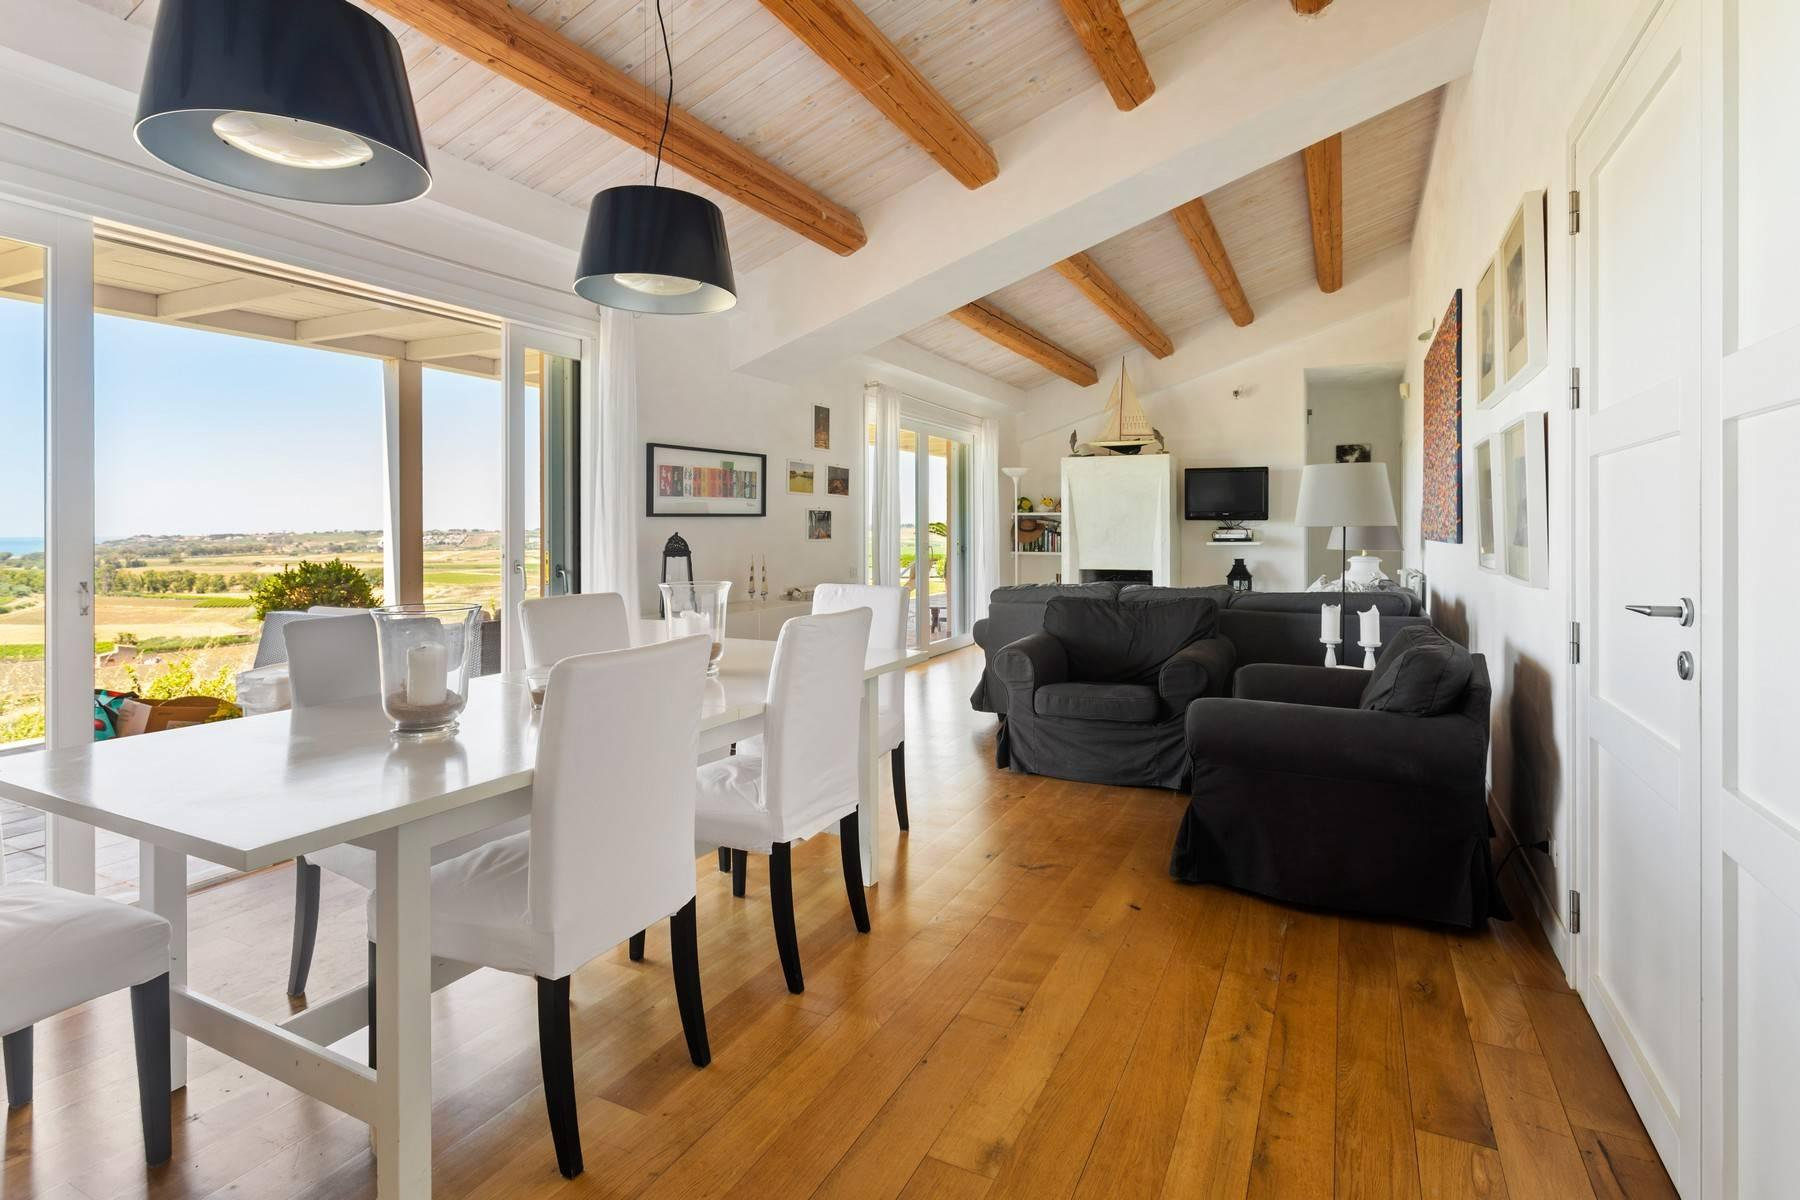 Stunning villa immersed in the countryside and overlooking the sea - 4